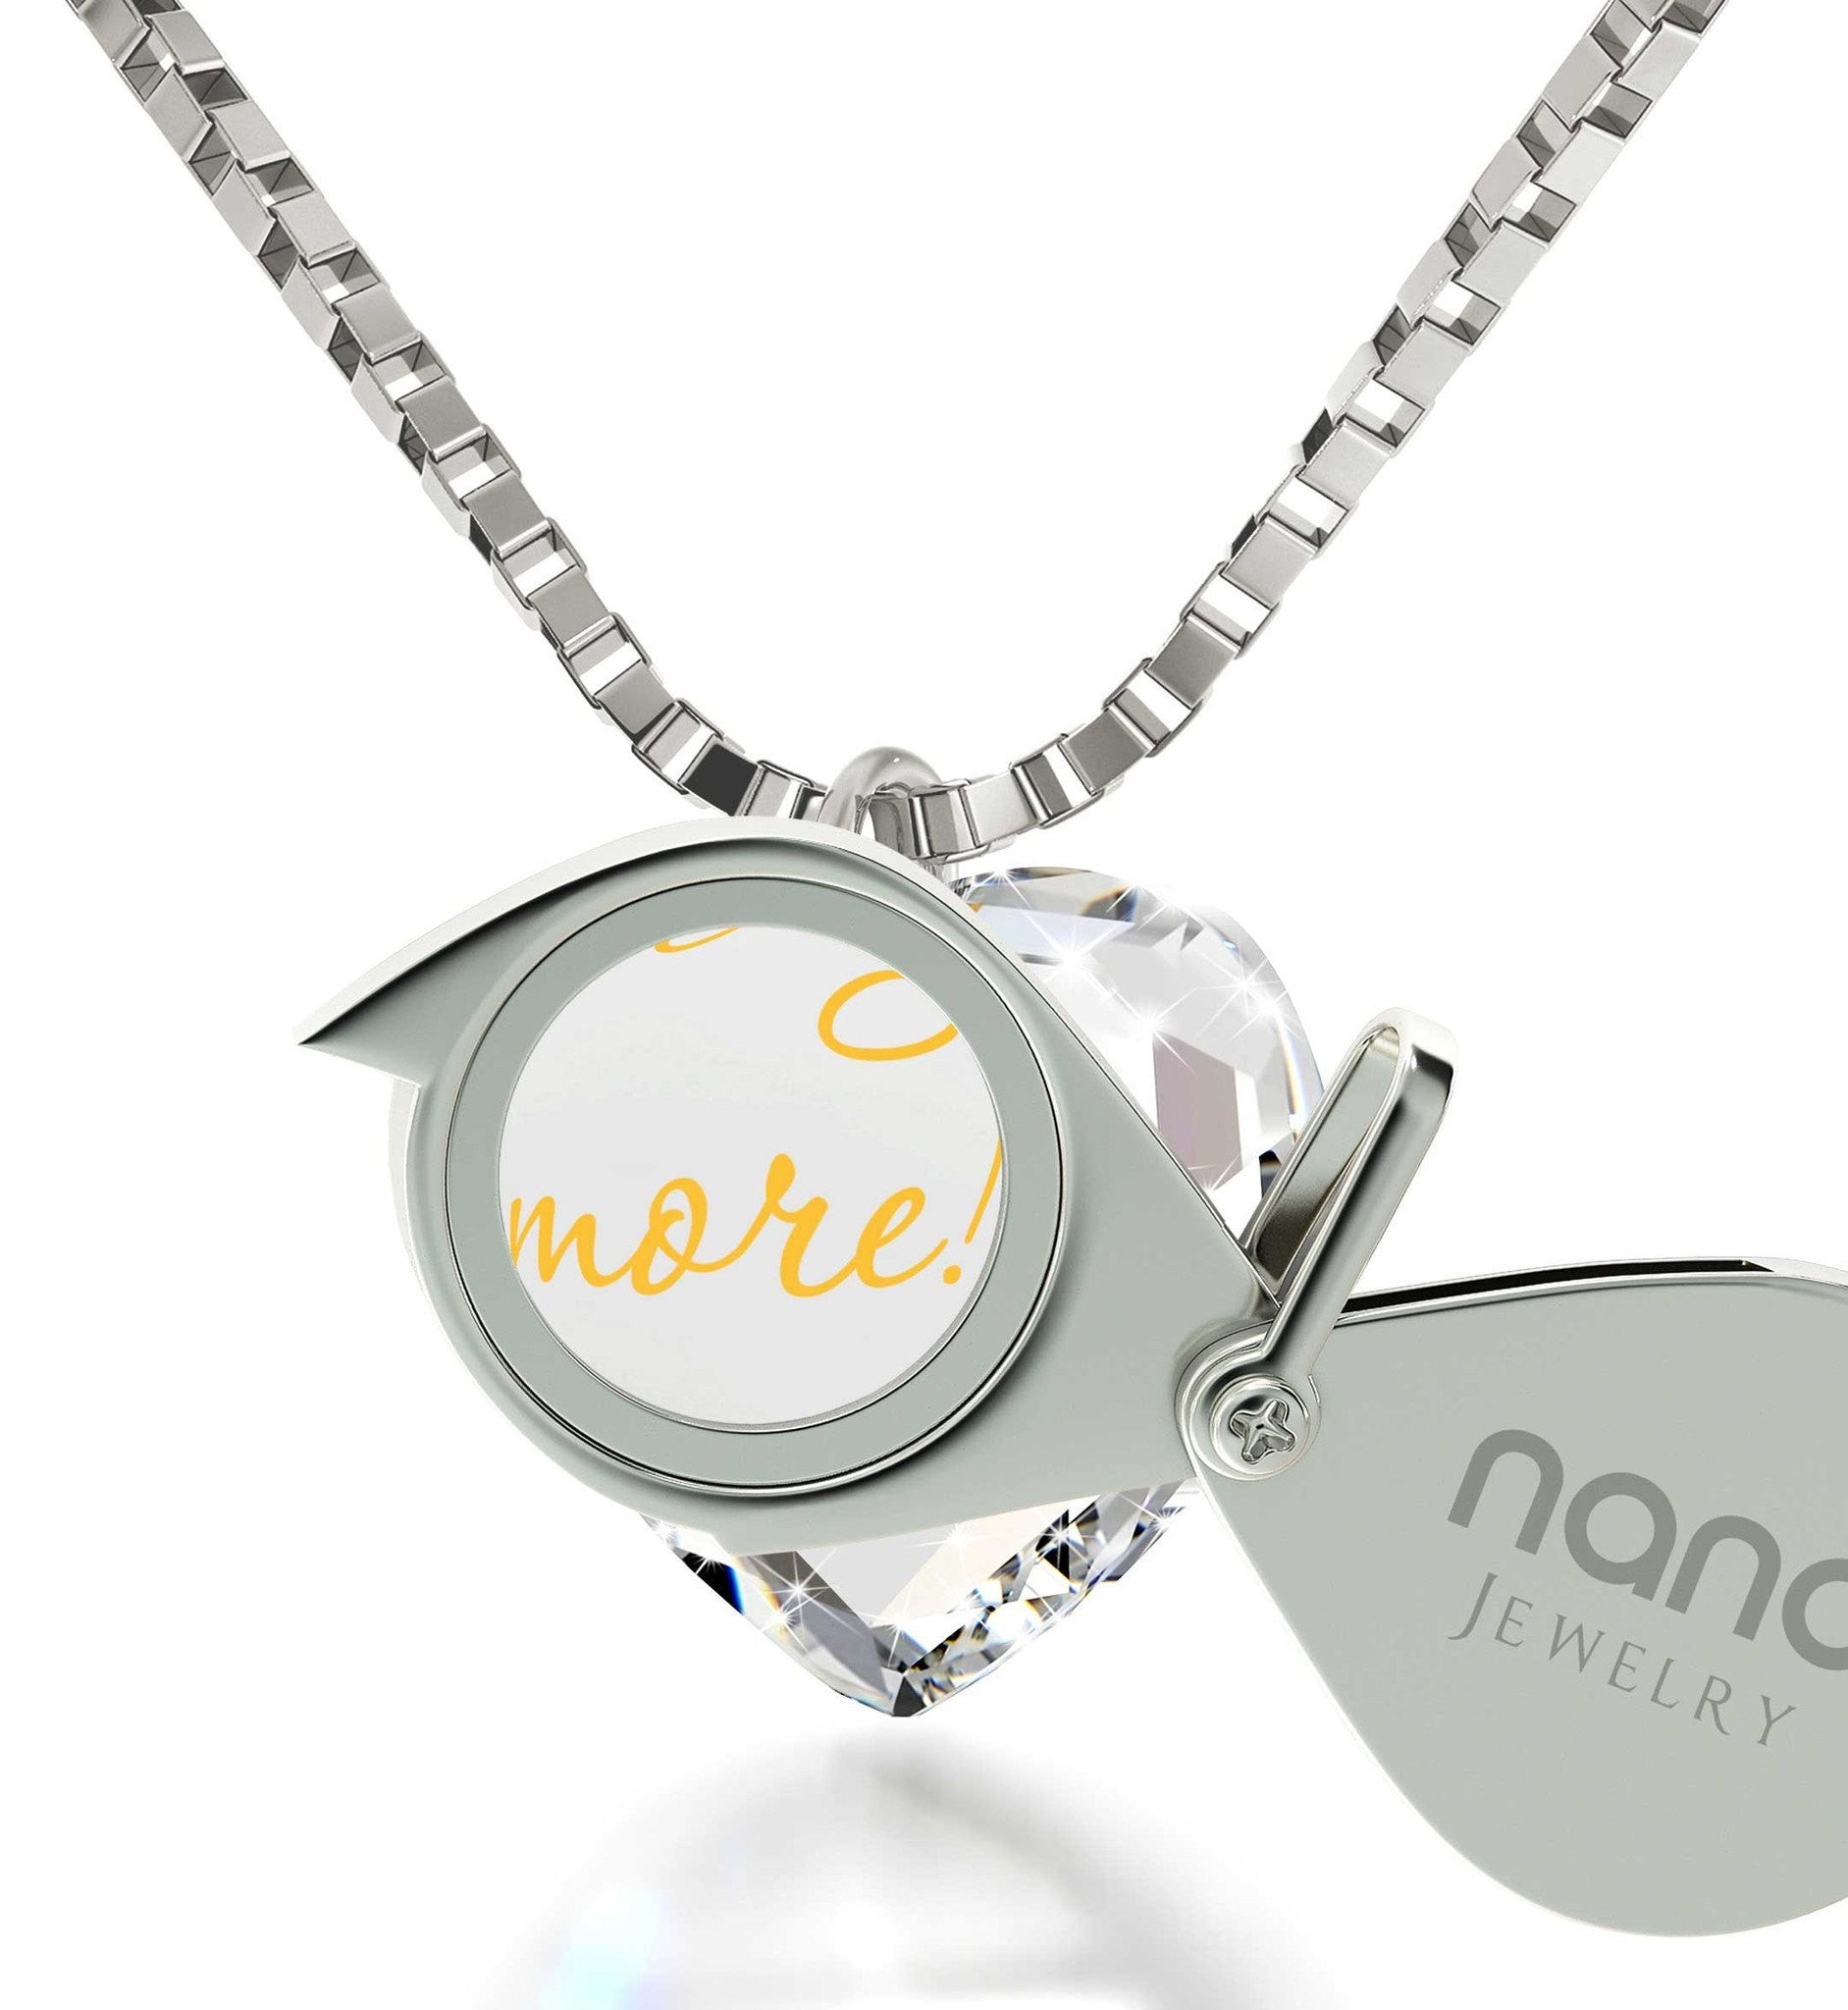 """I Love You More"" 24k Gold, Best Valentine Gift for Wife, Cool Xmas Presents, Nano Jewelry"